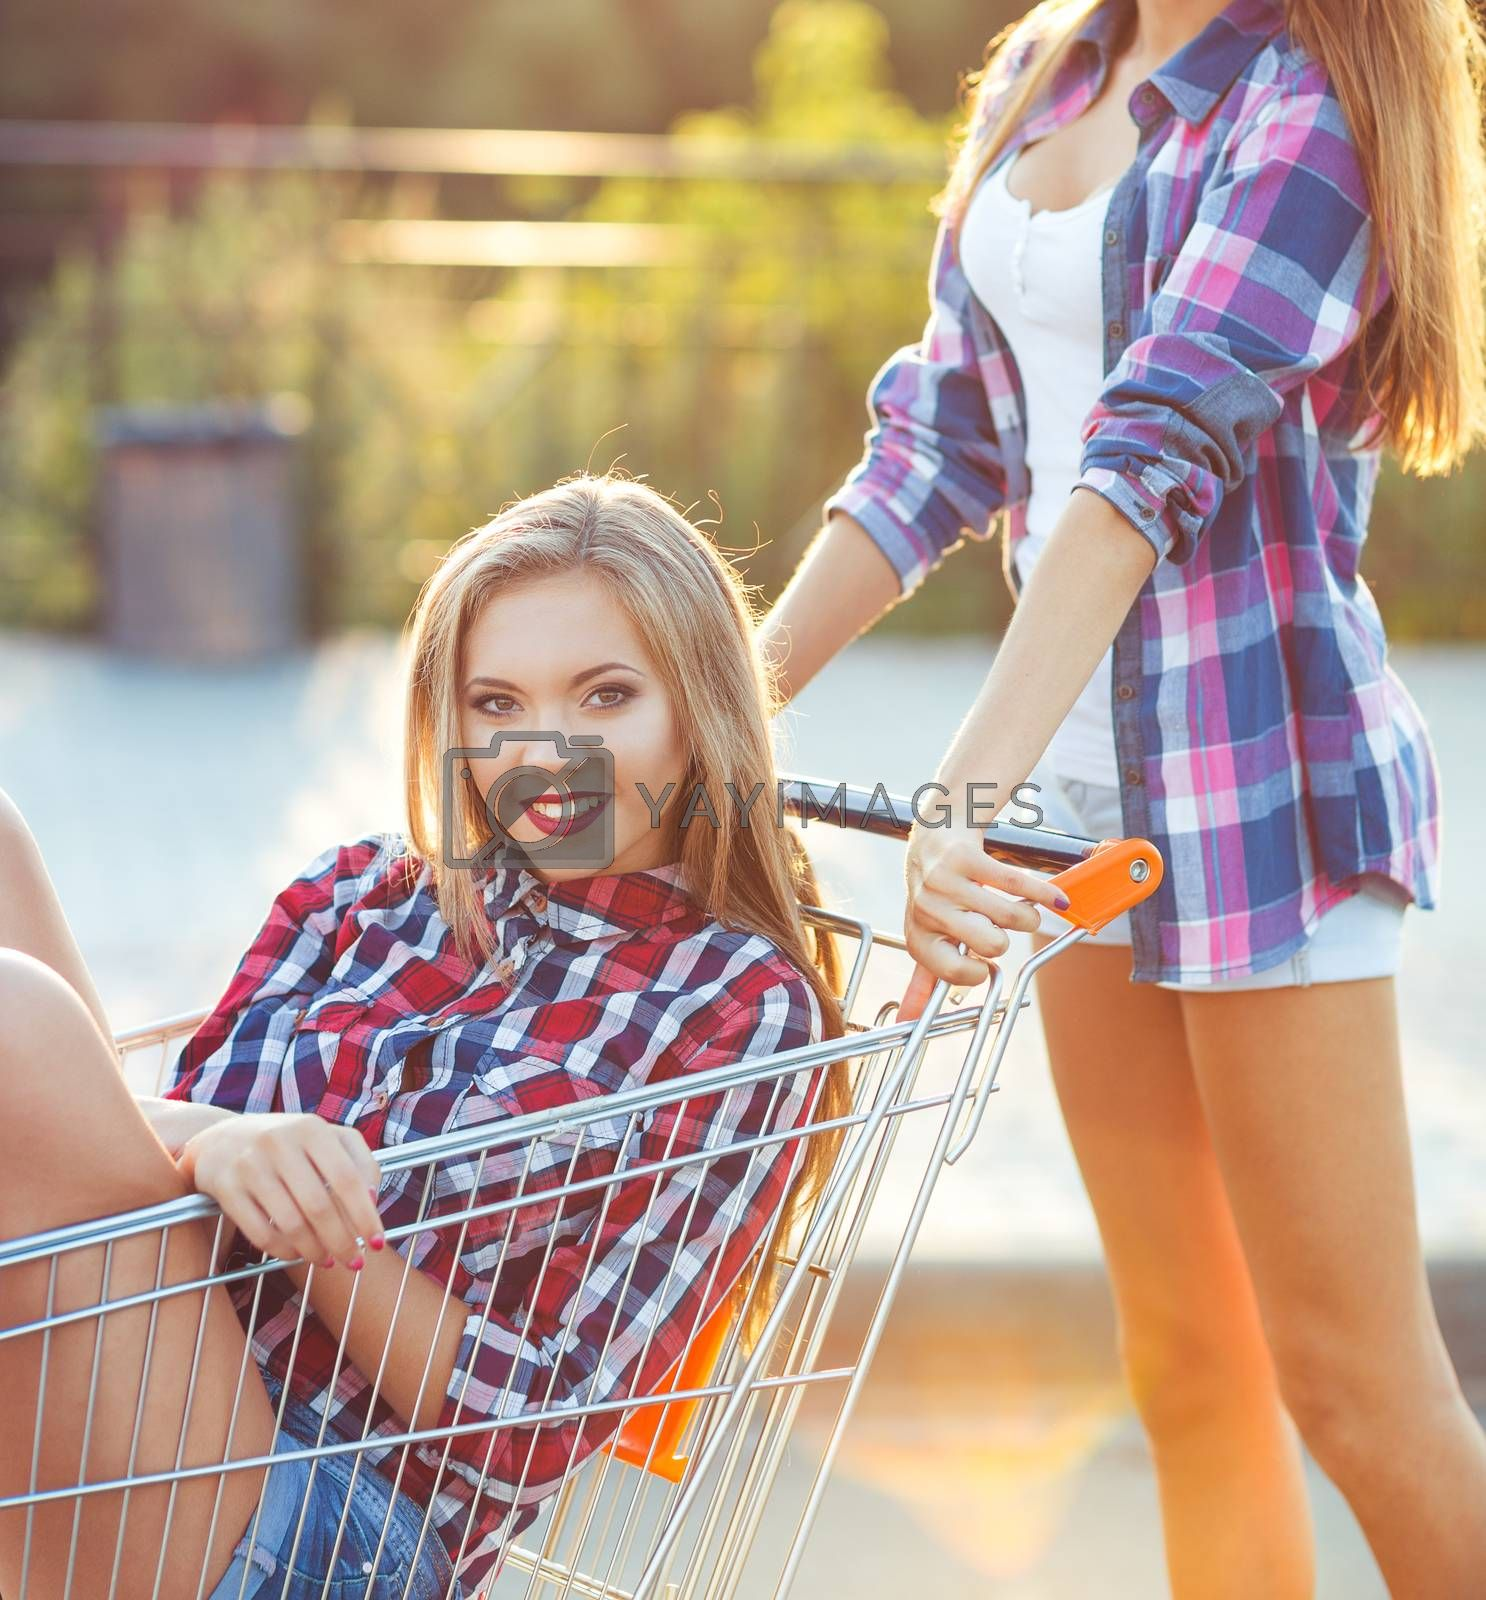 Two happy beautiful teen girls driving shopping cart outdoors by vlad_star